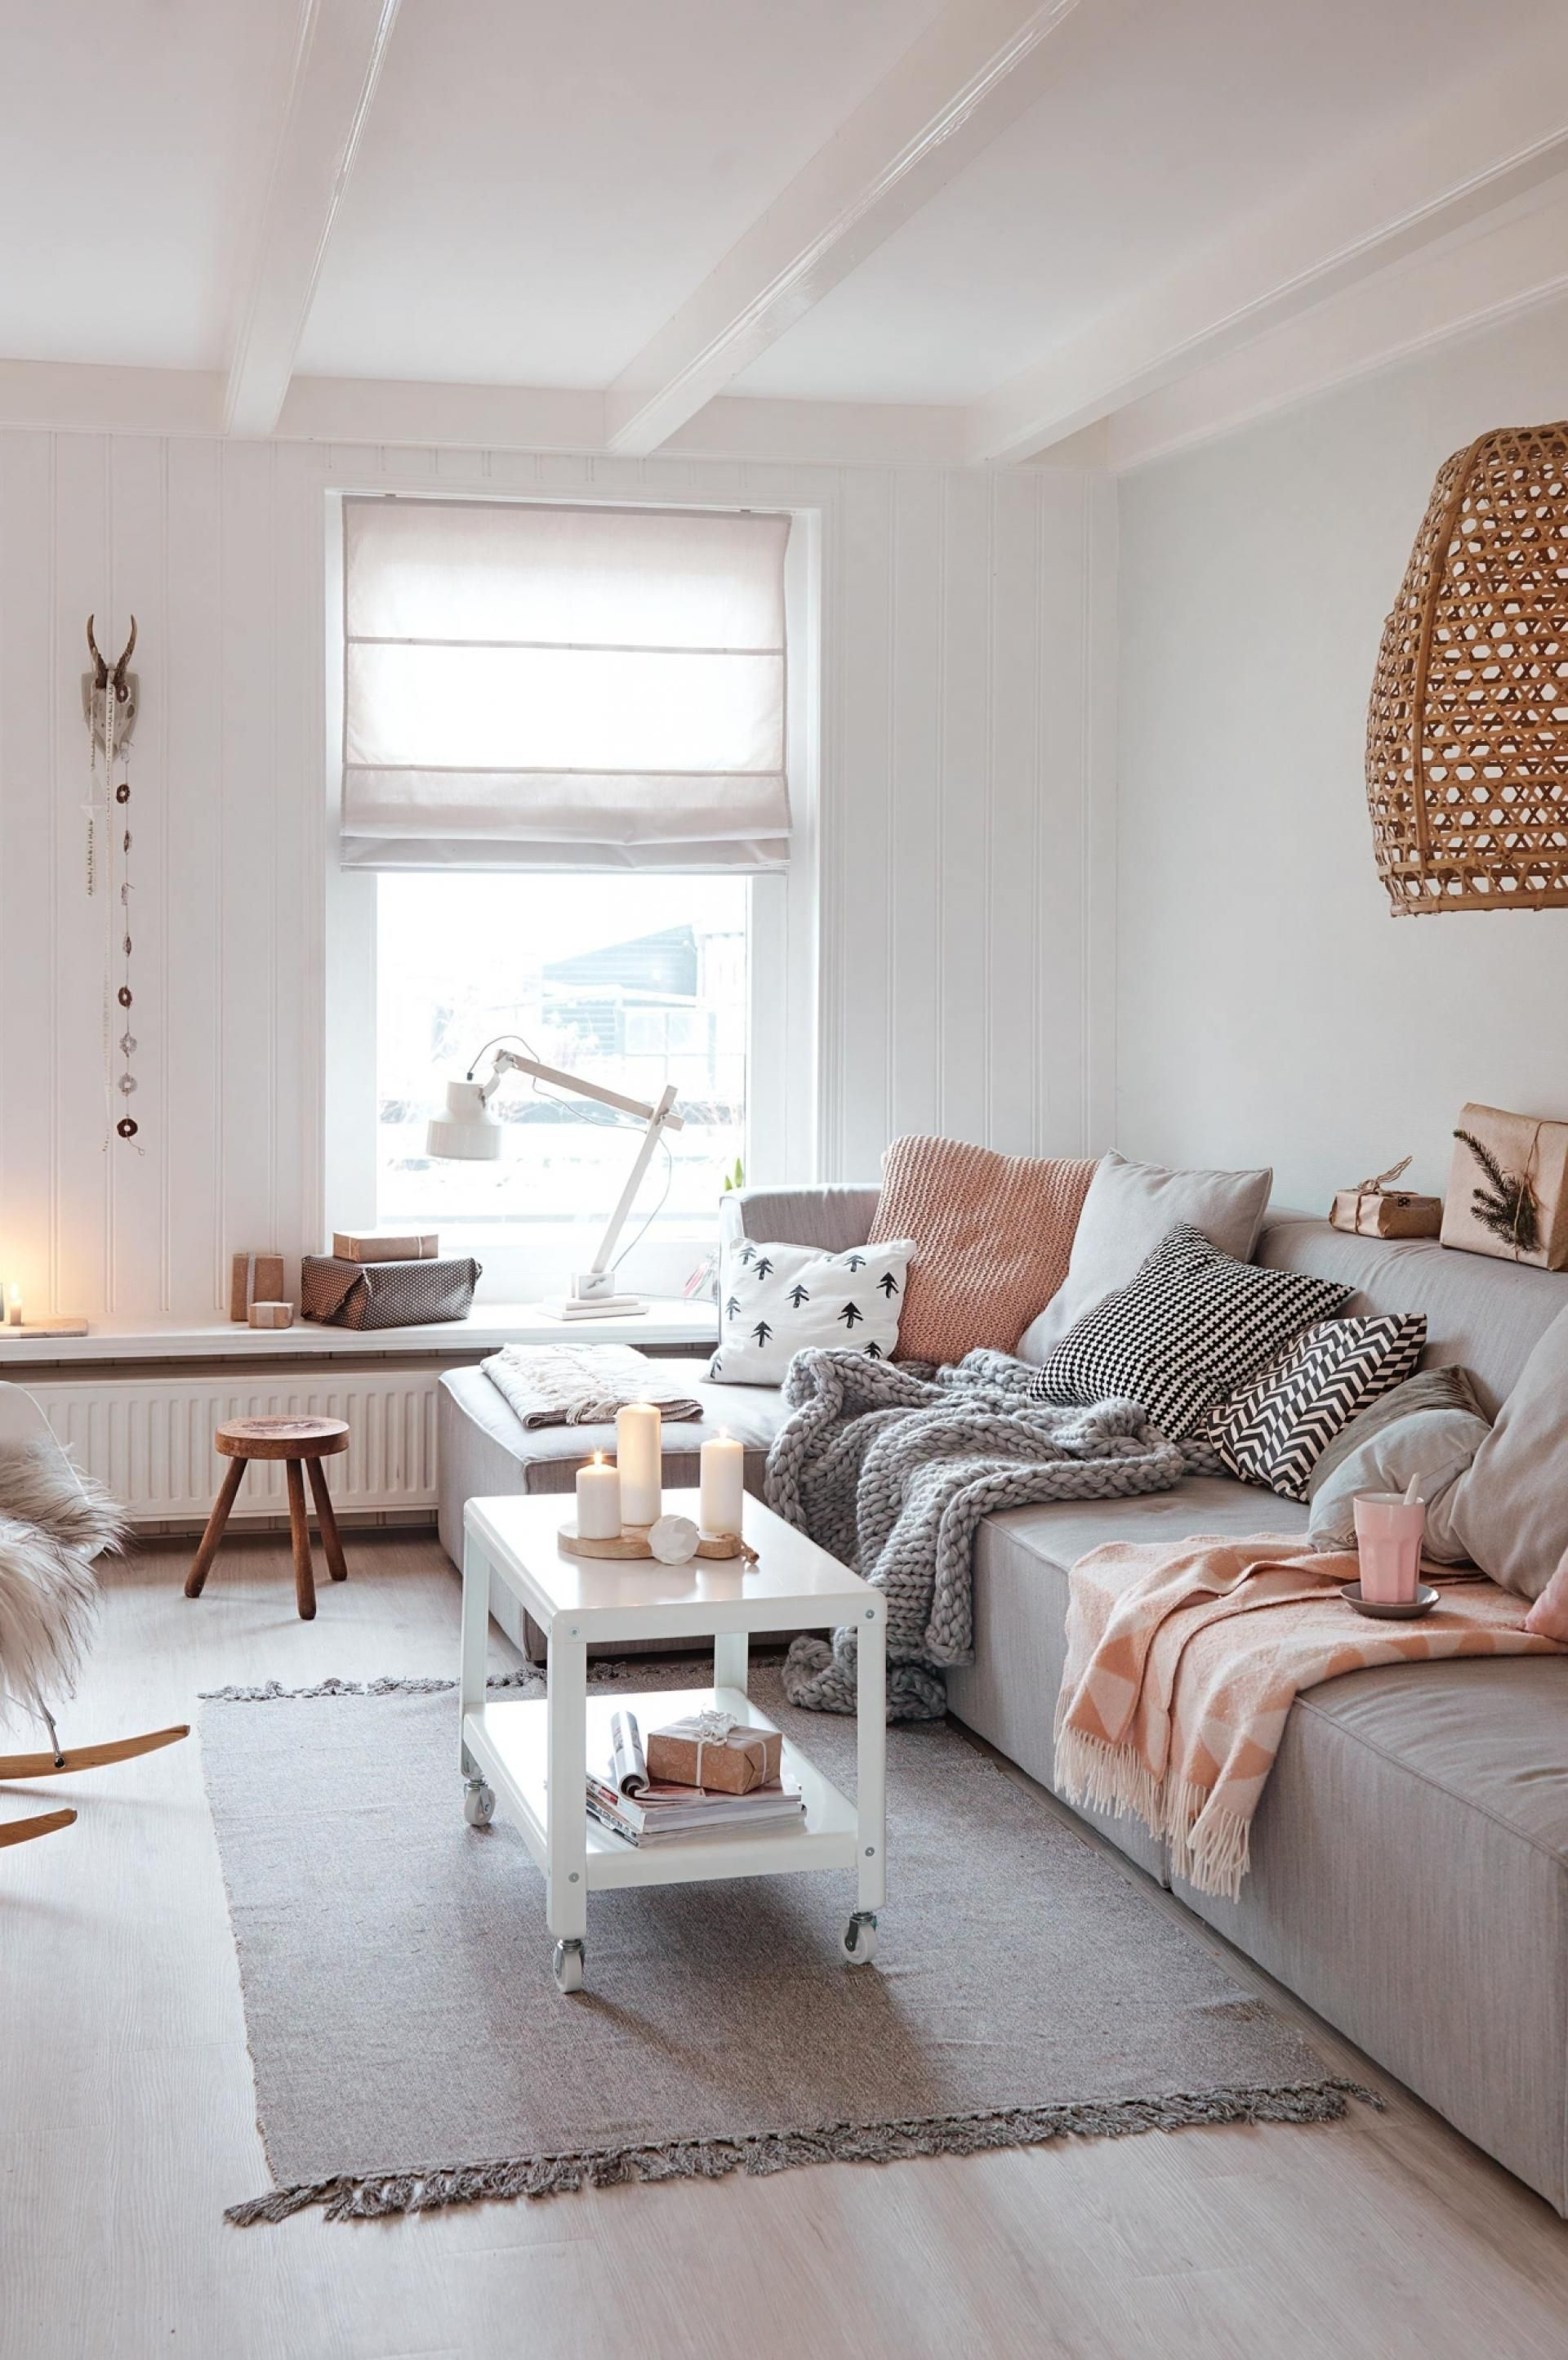 Home Interior Accents Scandinavian Living Room With Neutral Colors And Pastel